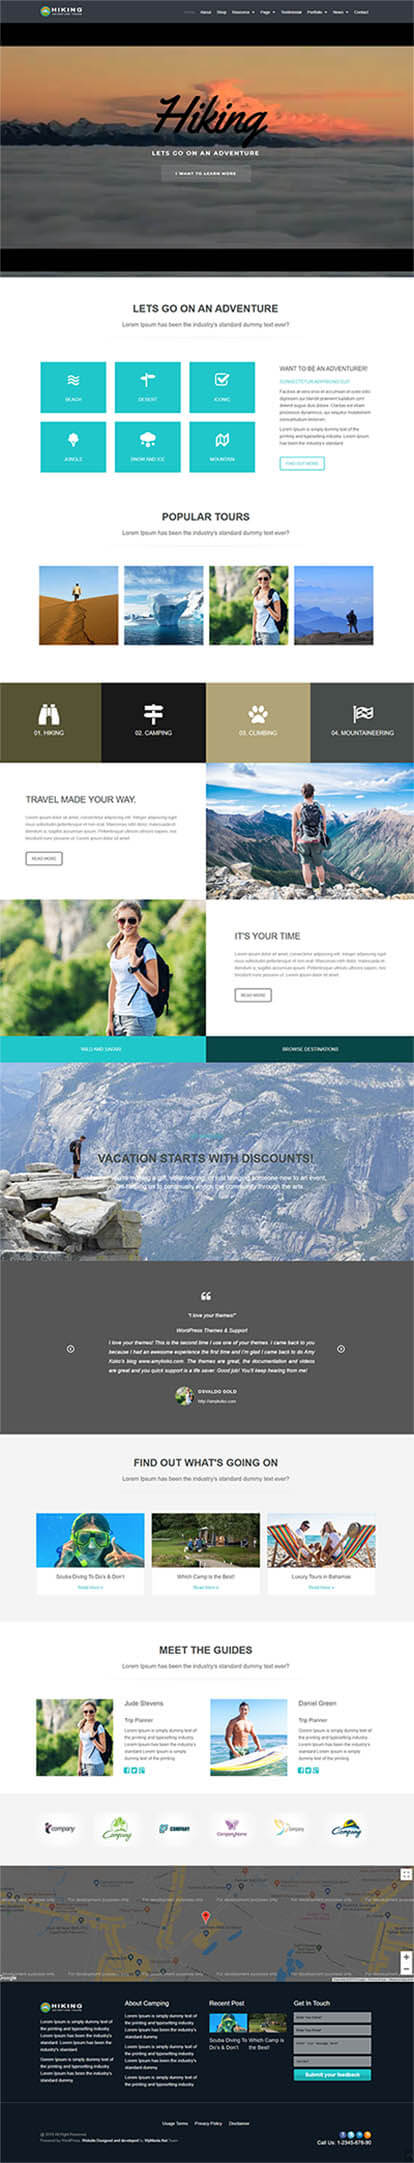 Hiking WORDPRESS THEME Full Demo